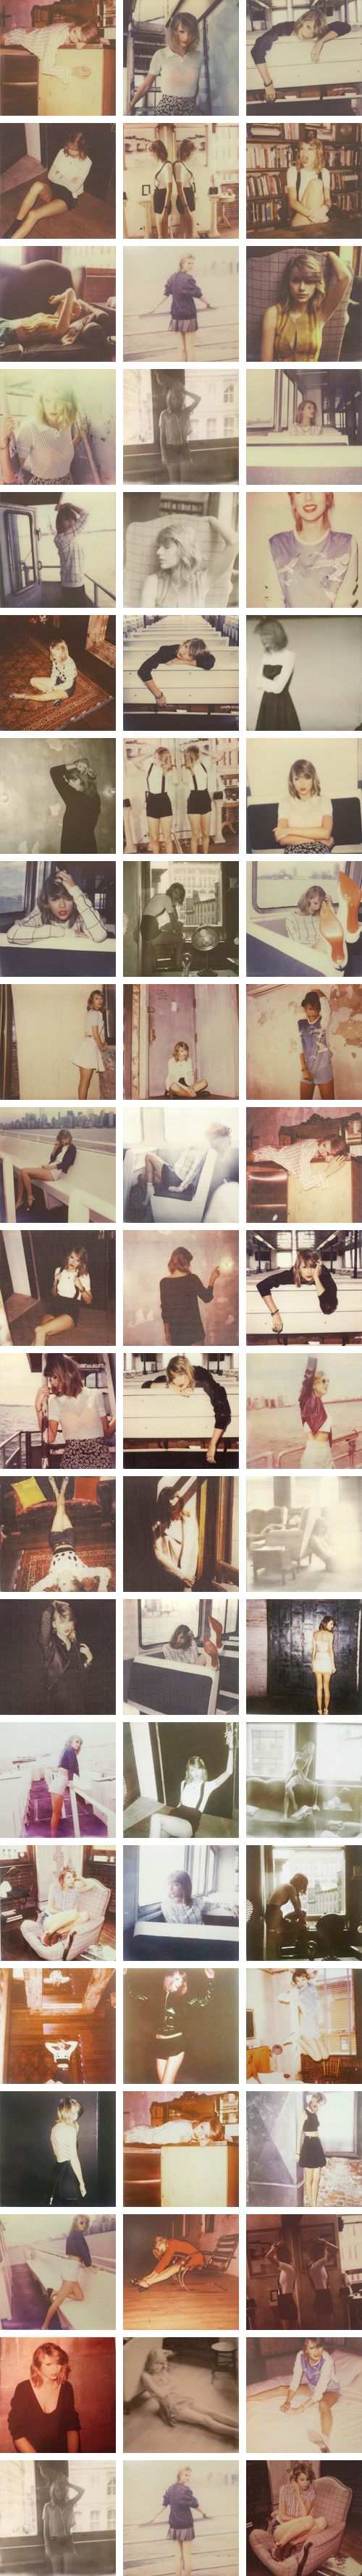 All the poloraids of Taylor swift! i really so wish i had them all!